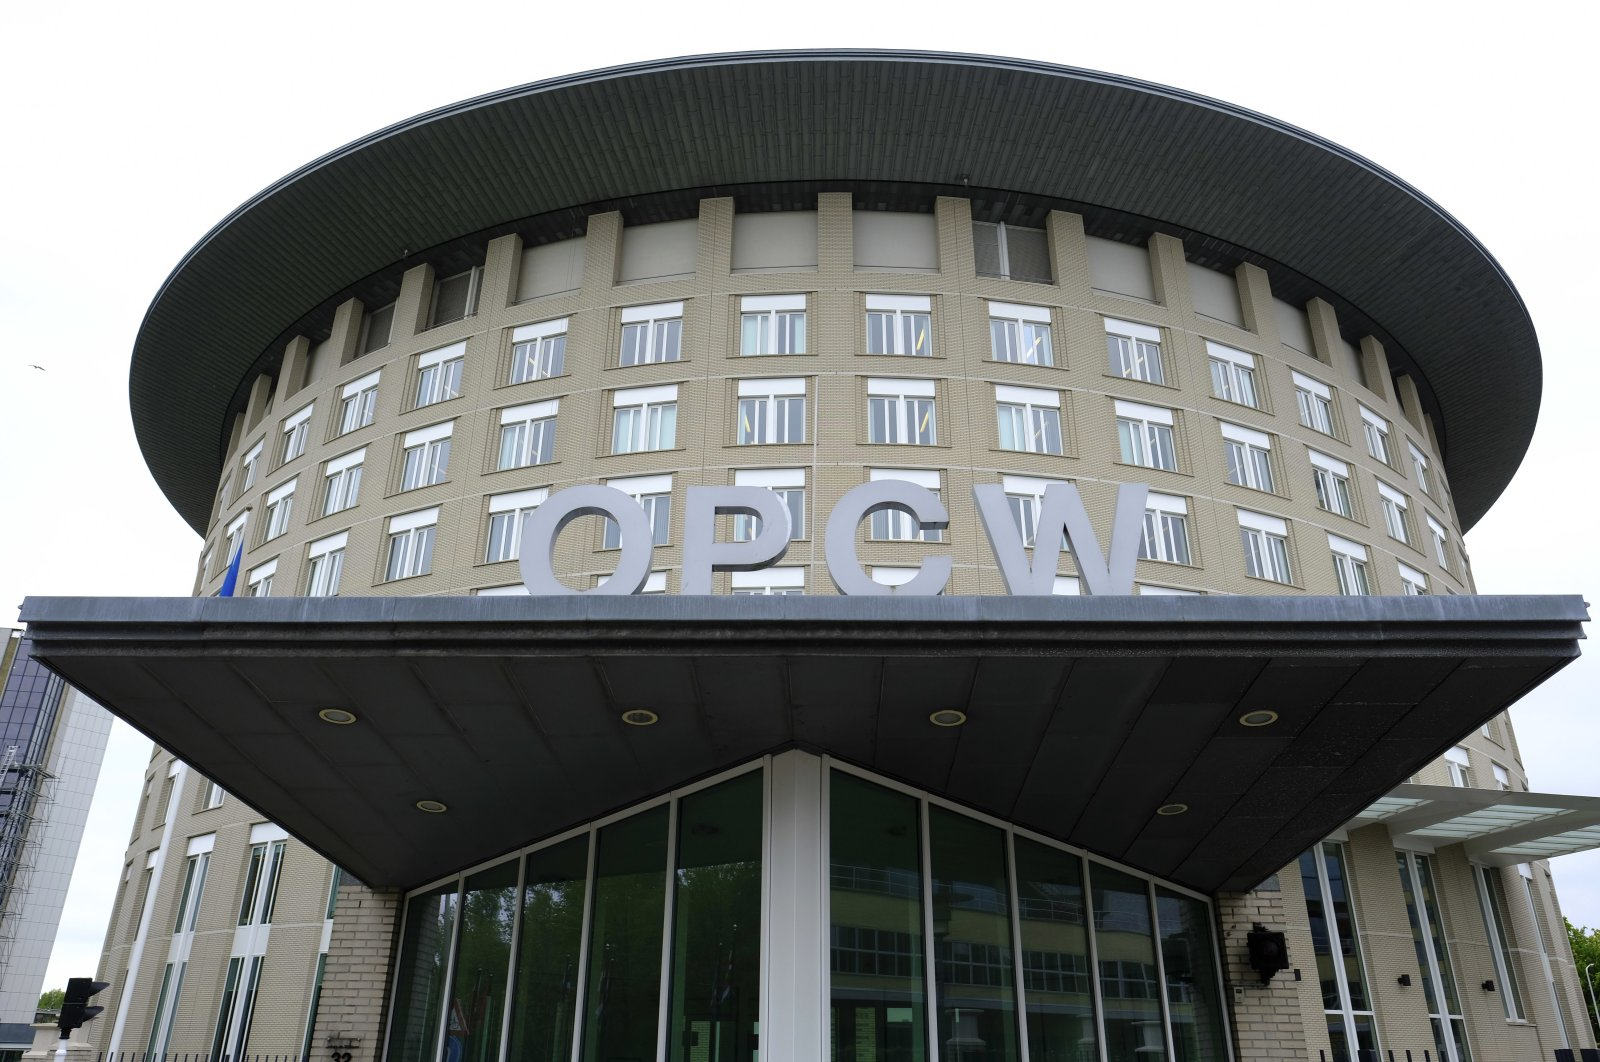 A view of the headquarters of the Organisation for the Prohibition of Chemical Weapons (OPCW), in The Hague, Netherlands, May 5, 2017. (AP)